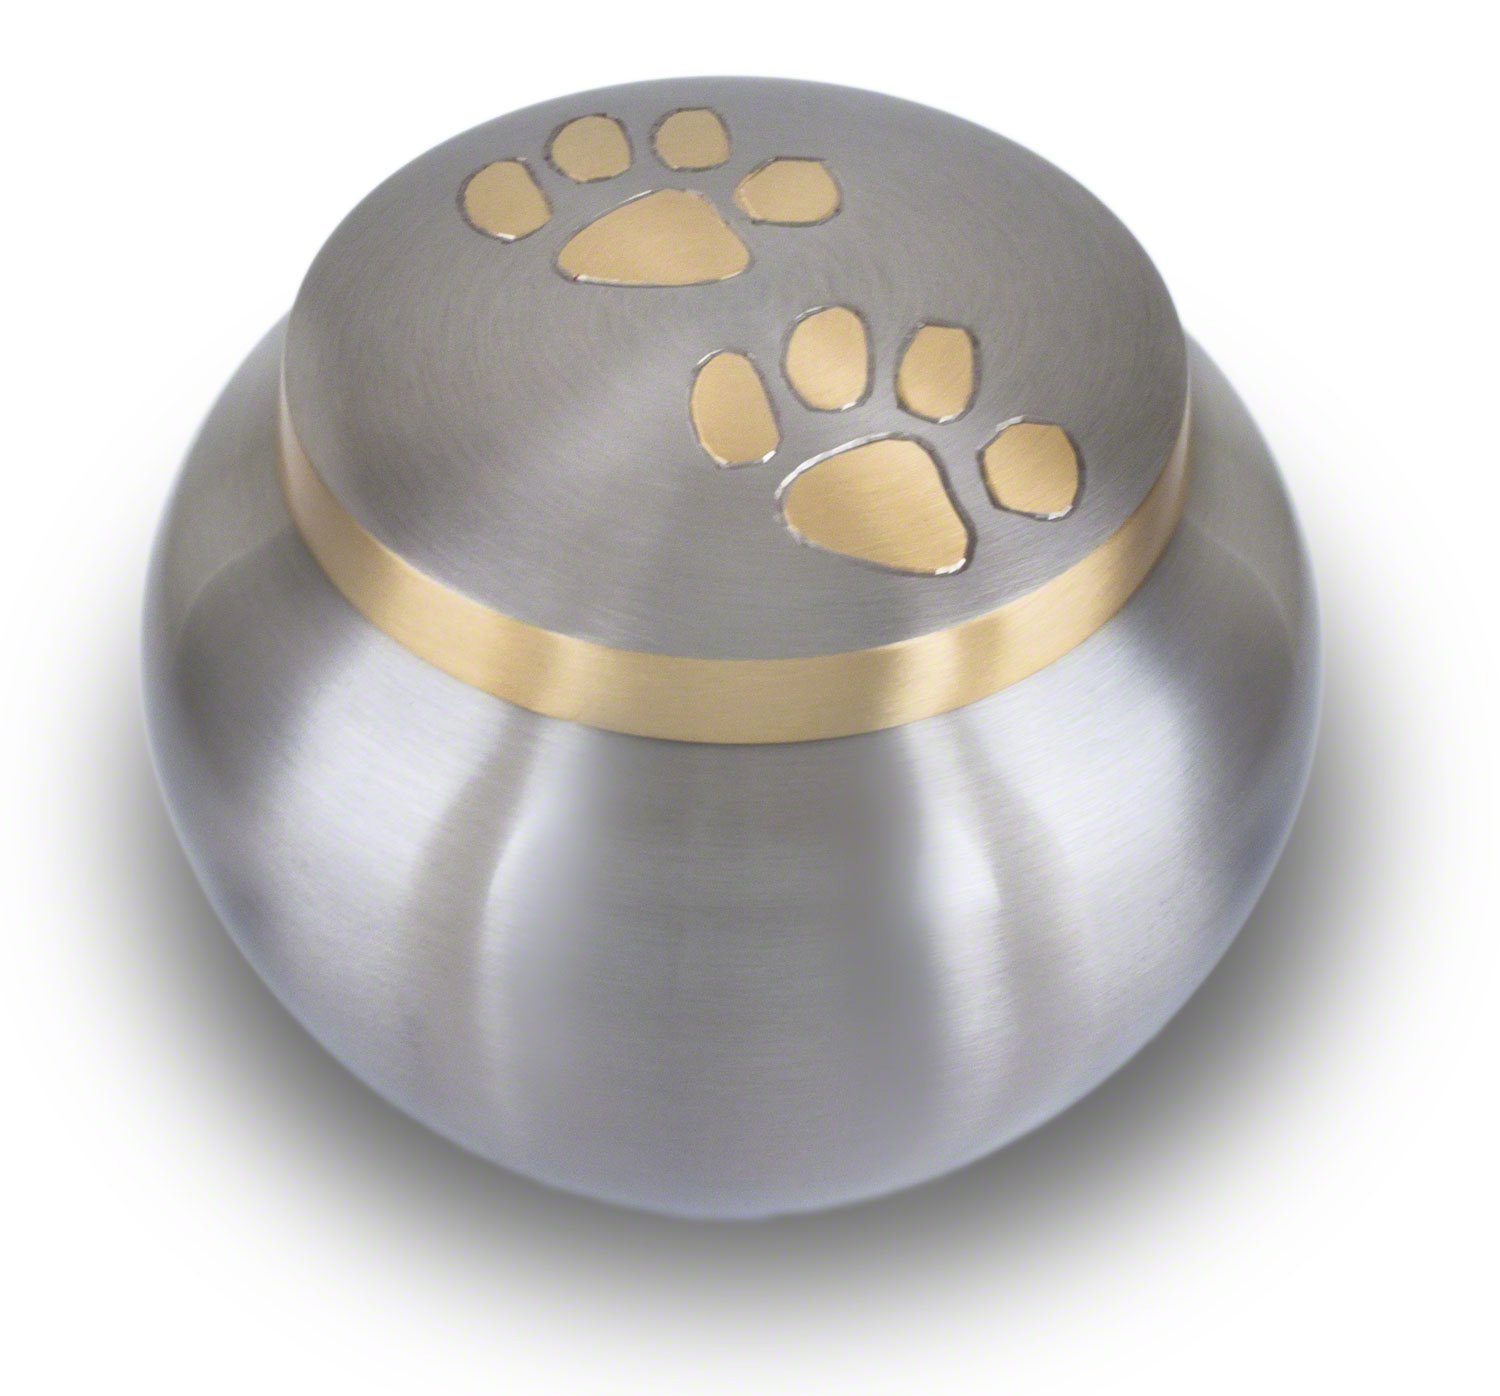 Best Friend Services Odyssey Pewter with Brass Paws (Large) by Best Friend Services (Image #1)